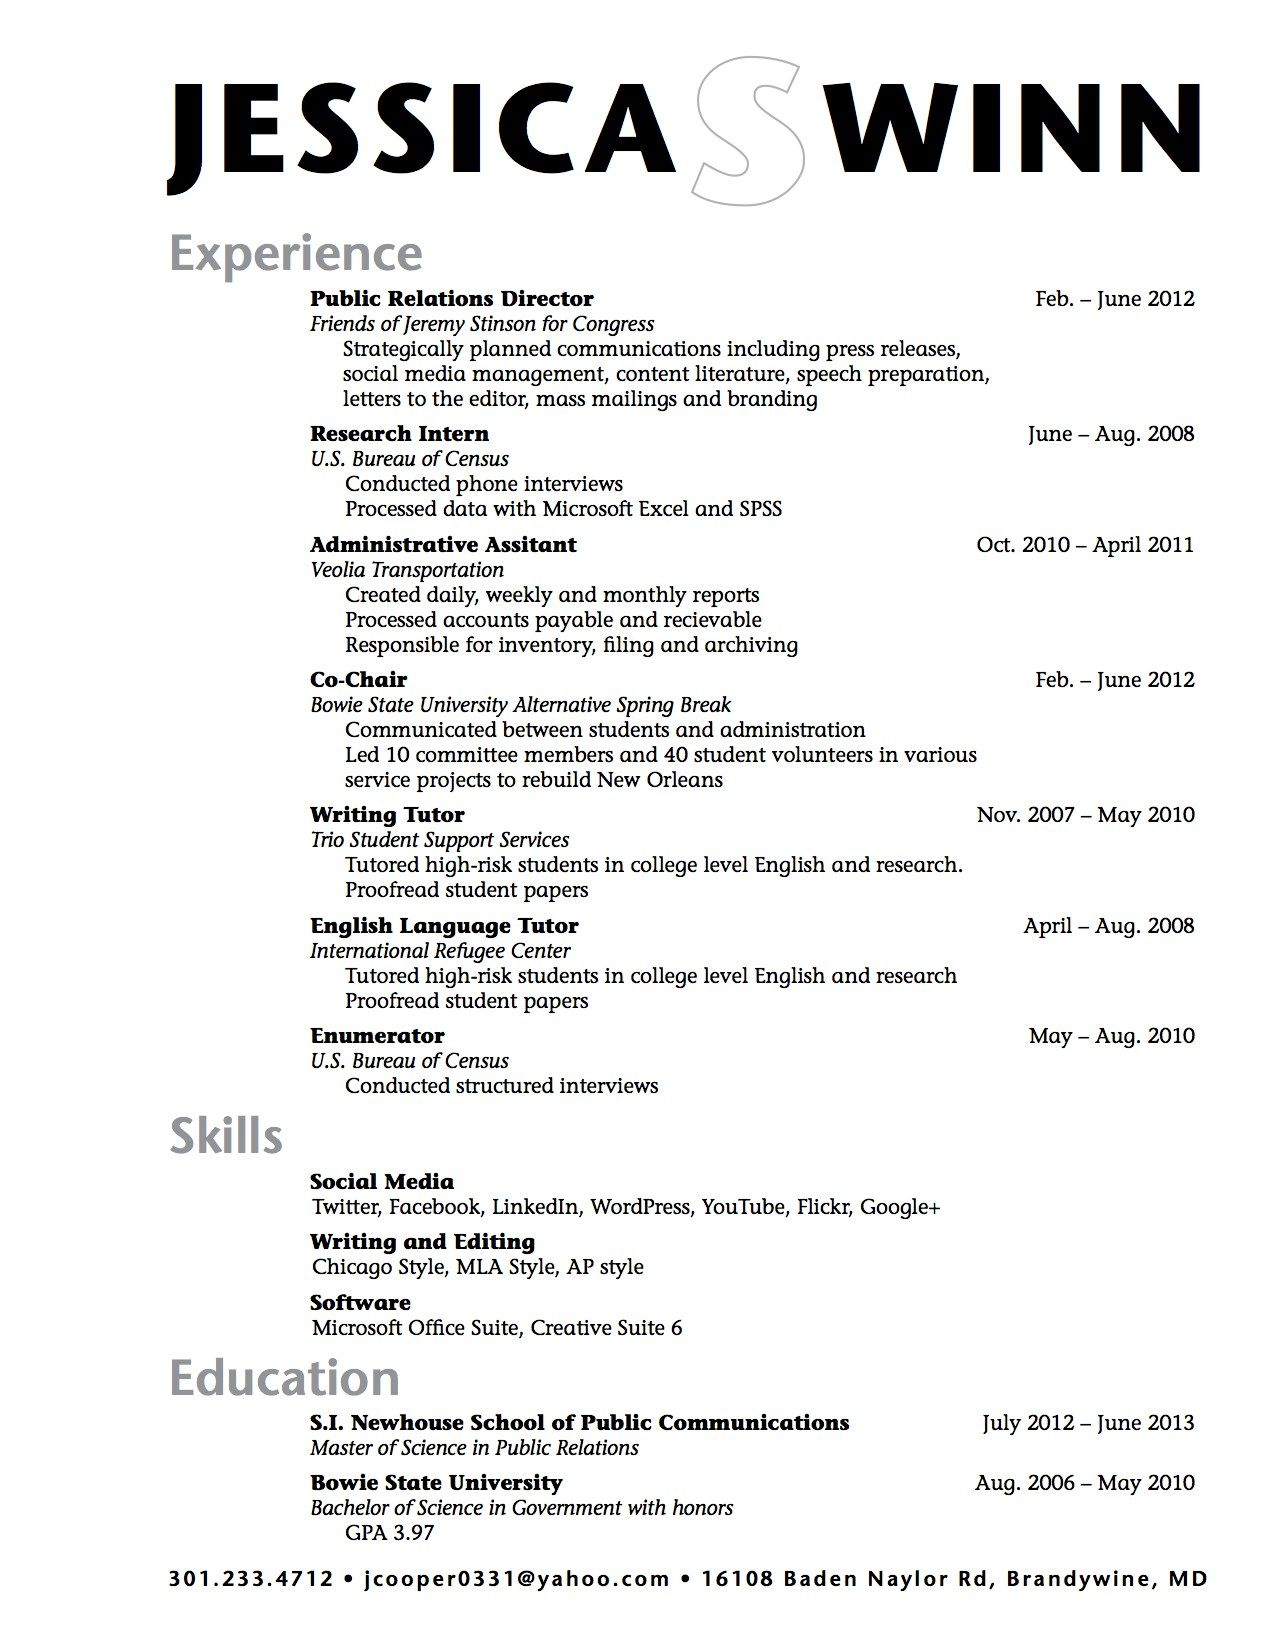 Famous 1 Page Resume Format Free Download Tall 1 Year Experience Resume Format For Java Developer Shaped 1 Year Experience Resume Format For Net Developer 15 Year Old Funny Resume Old 1st Year Teacher Resume Template Bright2 Page Resume Layout Sample High School Student Resume Example | Resume | Pinterest ..